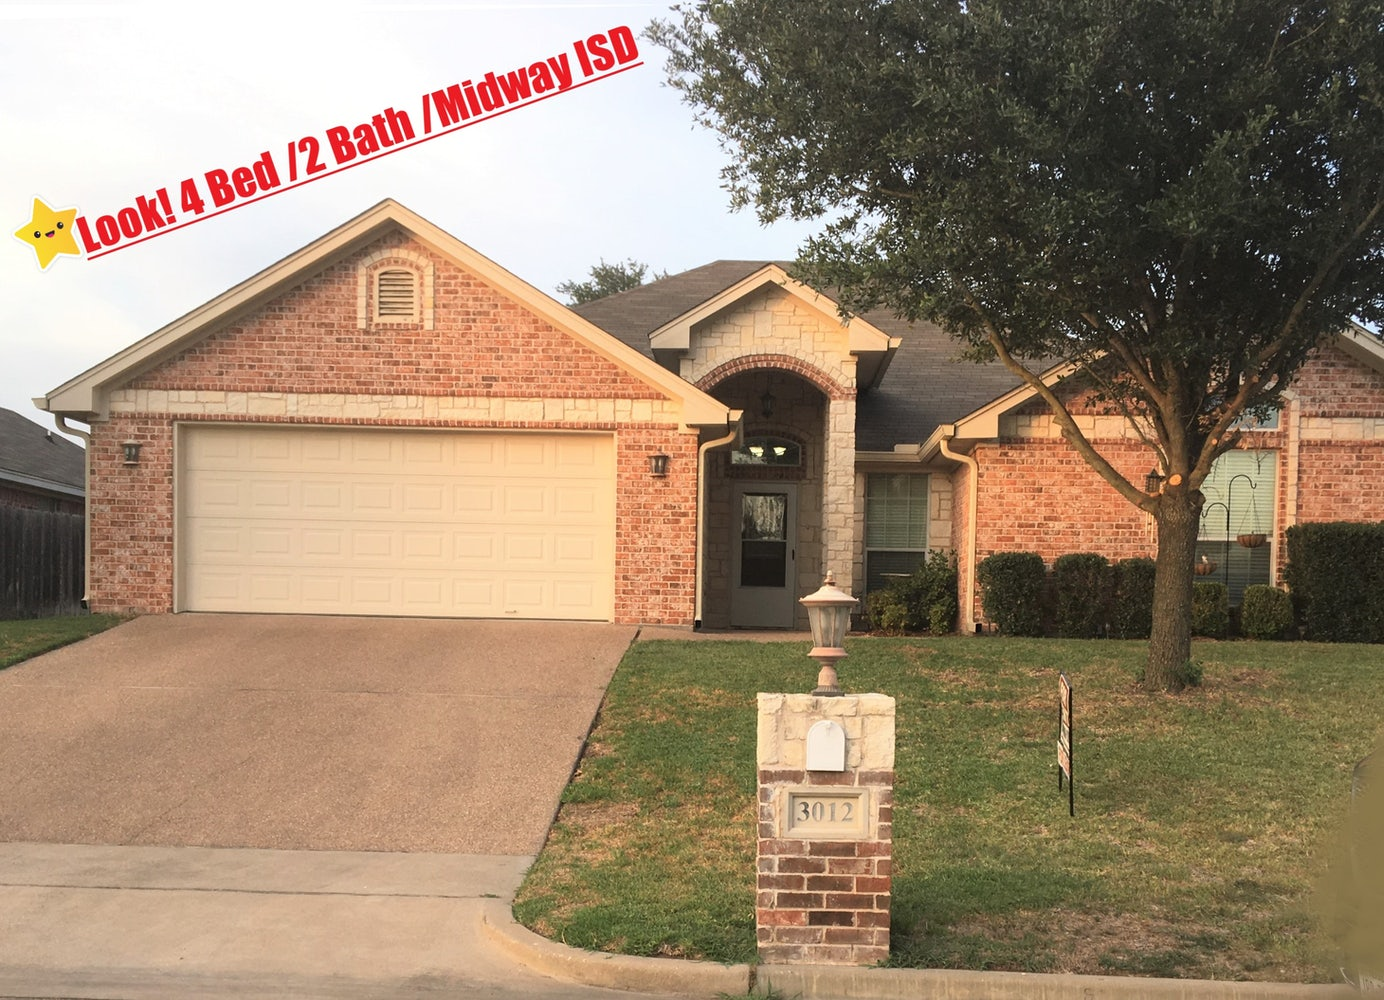 4 bath/2 bed/Midway ISD | Apply | Cozy